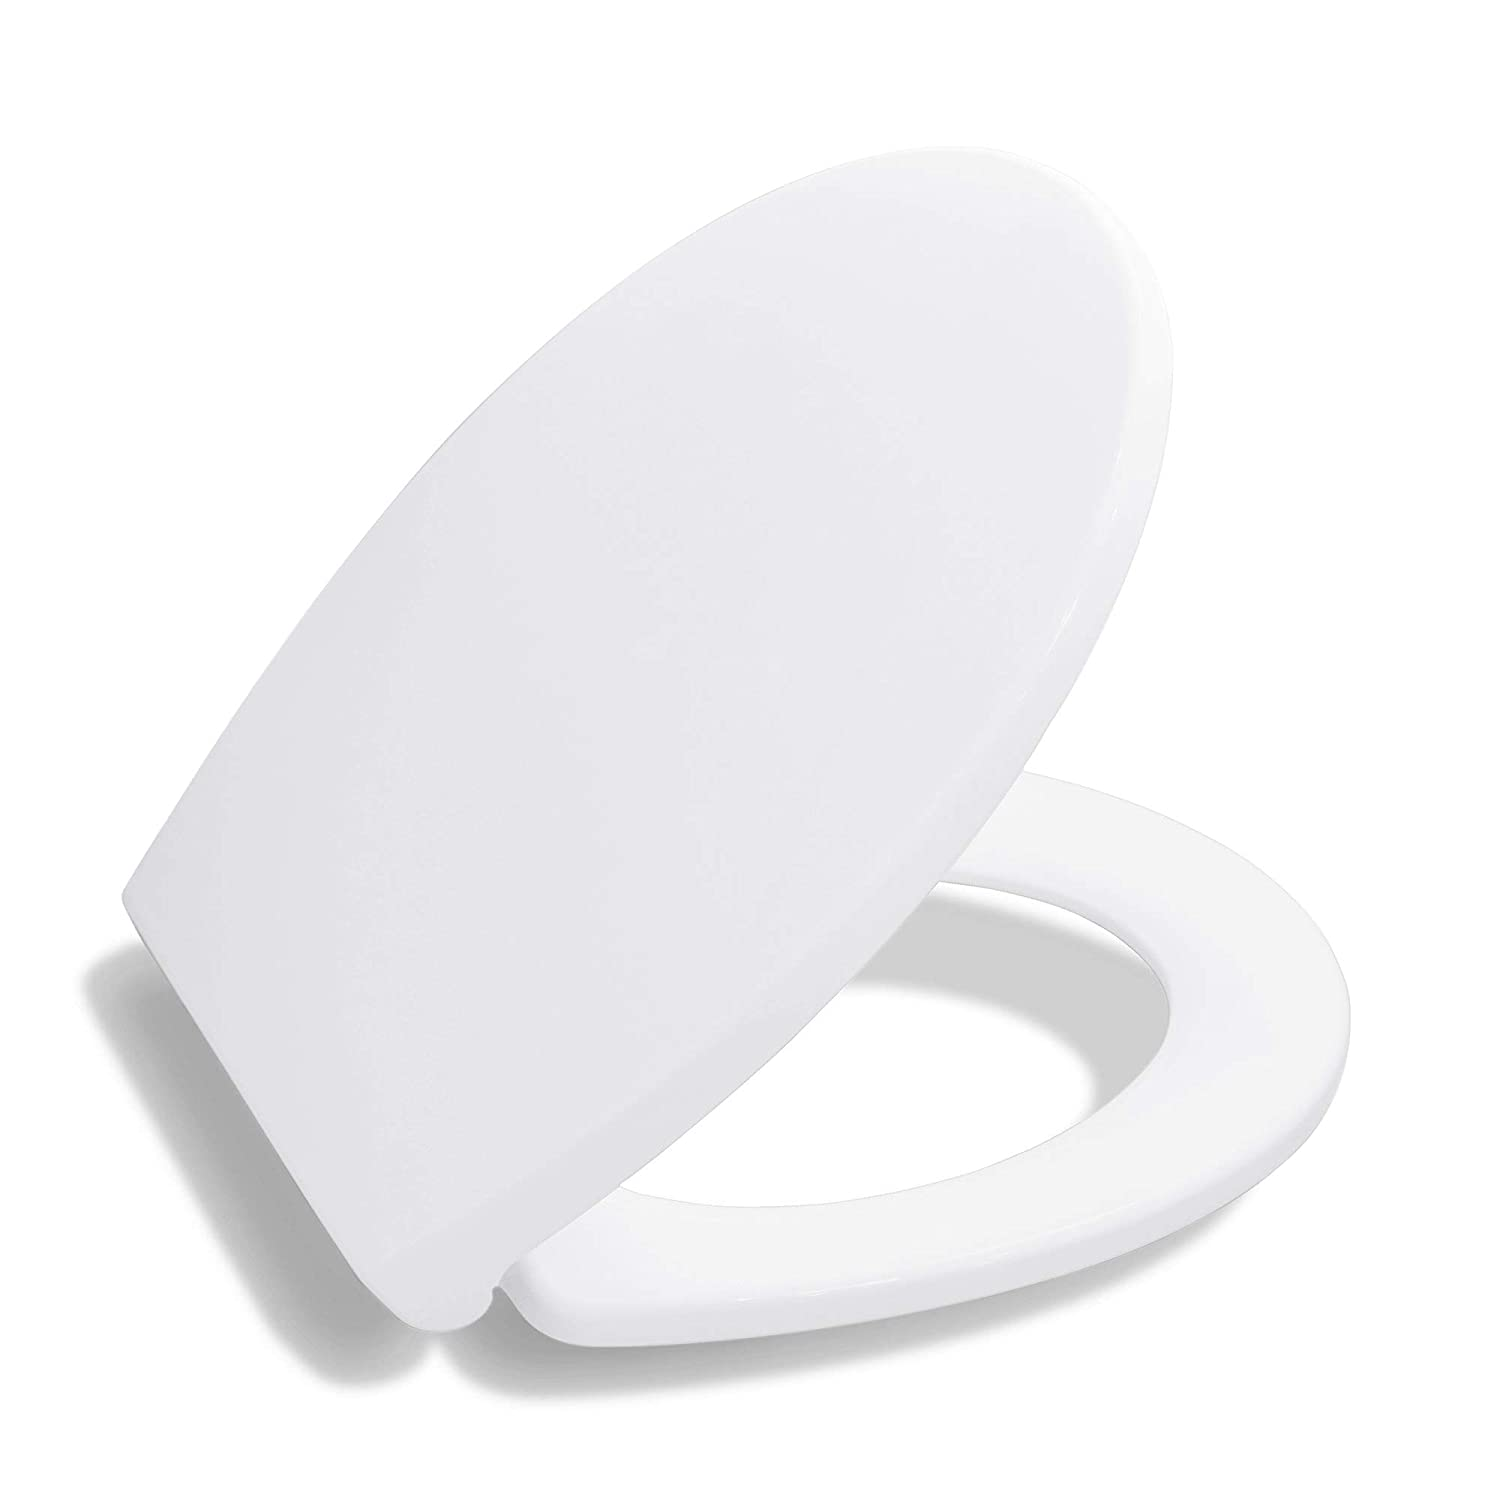 Awesome Bath Royale Br620 00 Premium Round Toilet Seat With Cover White Soft Close Quick Release For Easy Cleaning Fits All Manufacturers Round Toilets Onthecornerstone Fun Painted Chair Ideas Images Onthecornerstoneorg